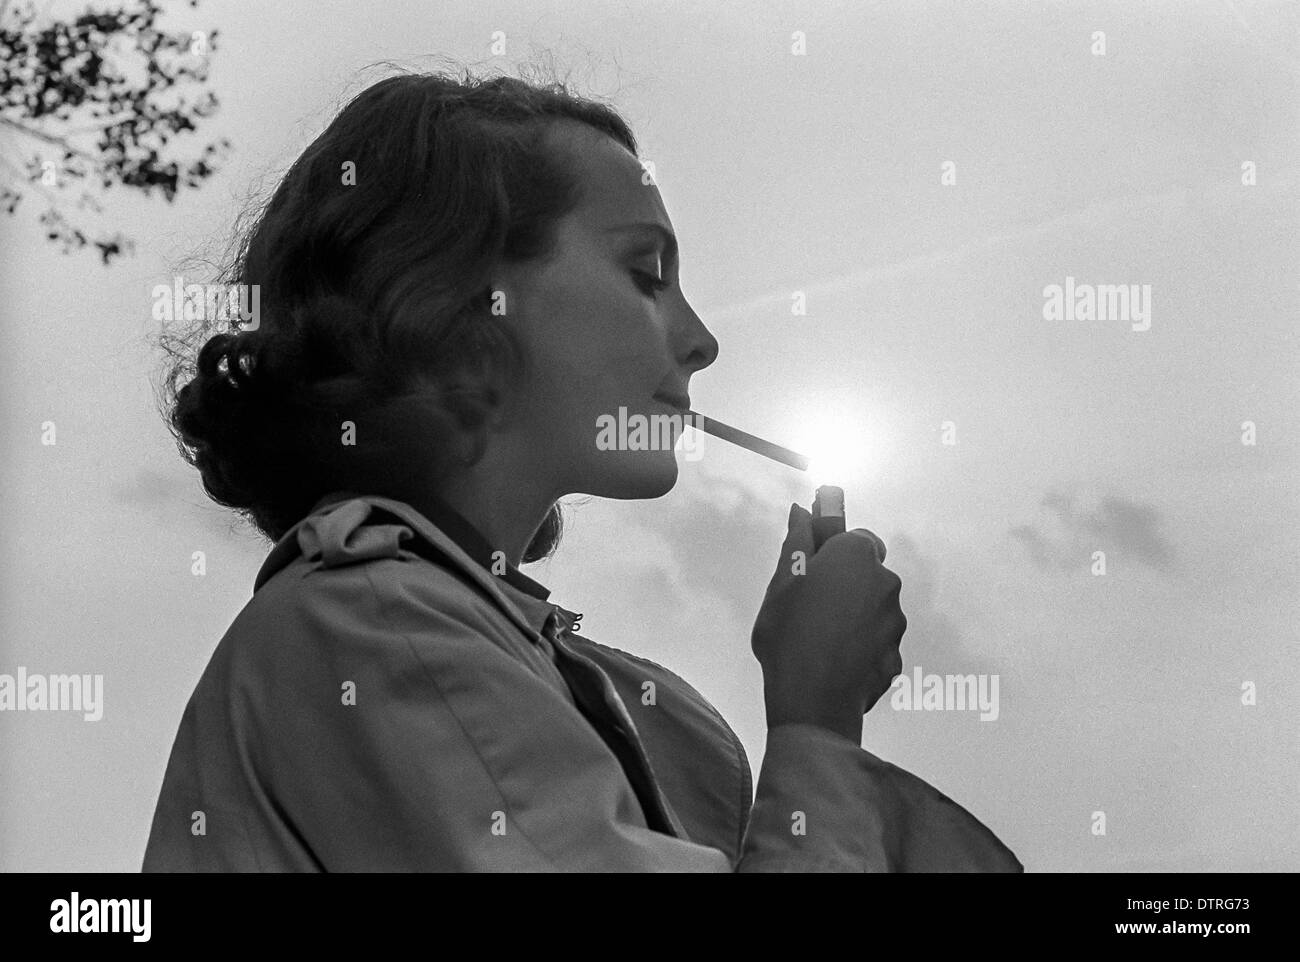 Young woman lighting a cigarette Stock Photo